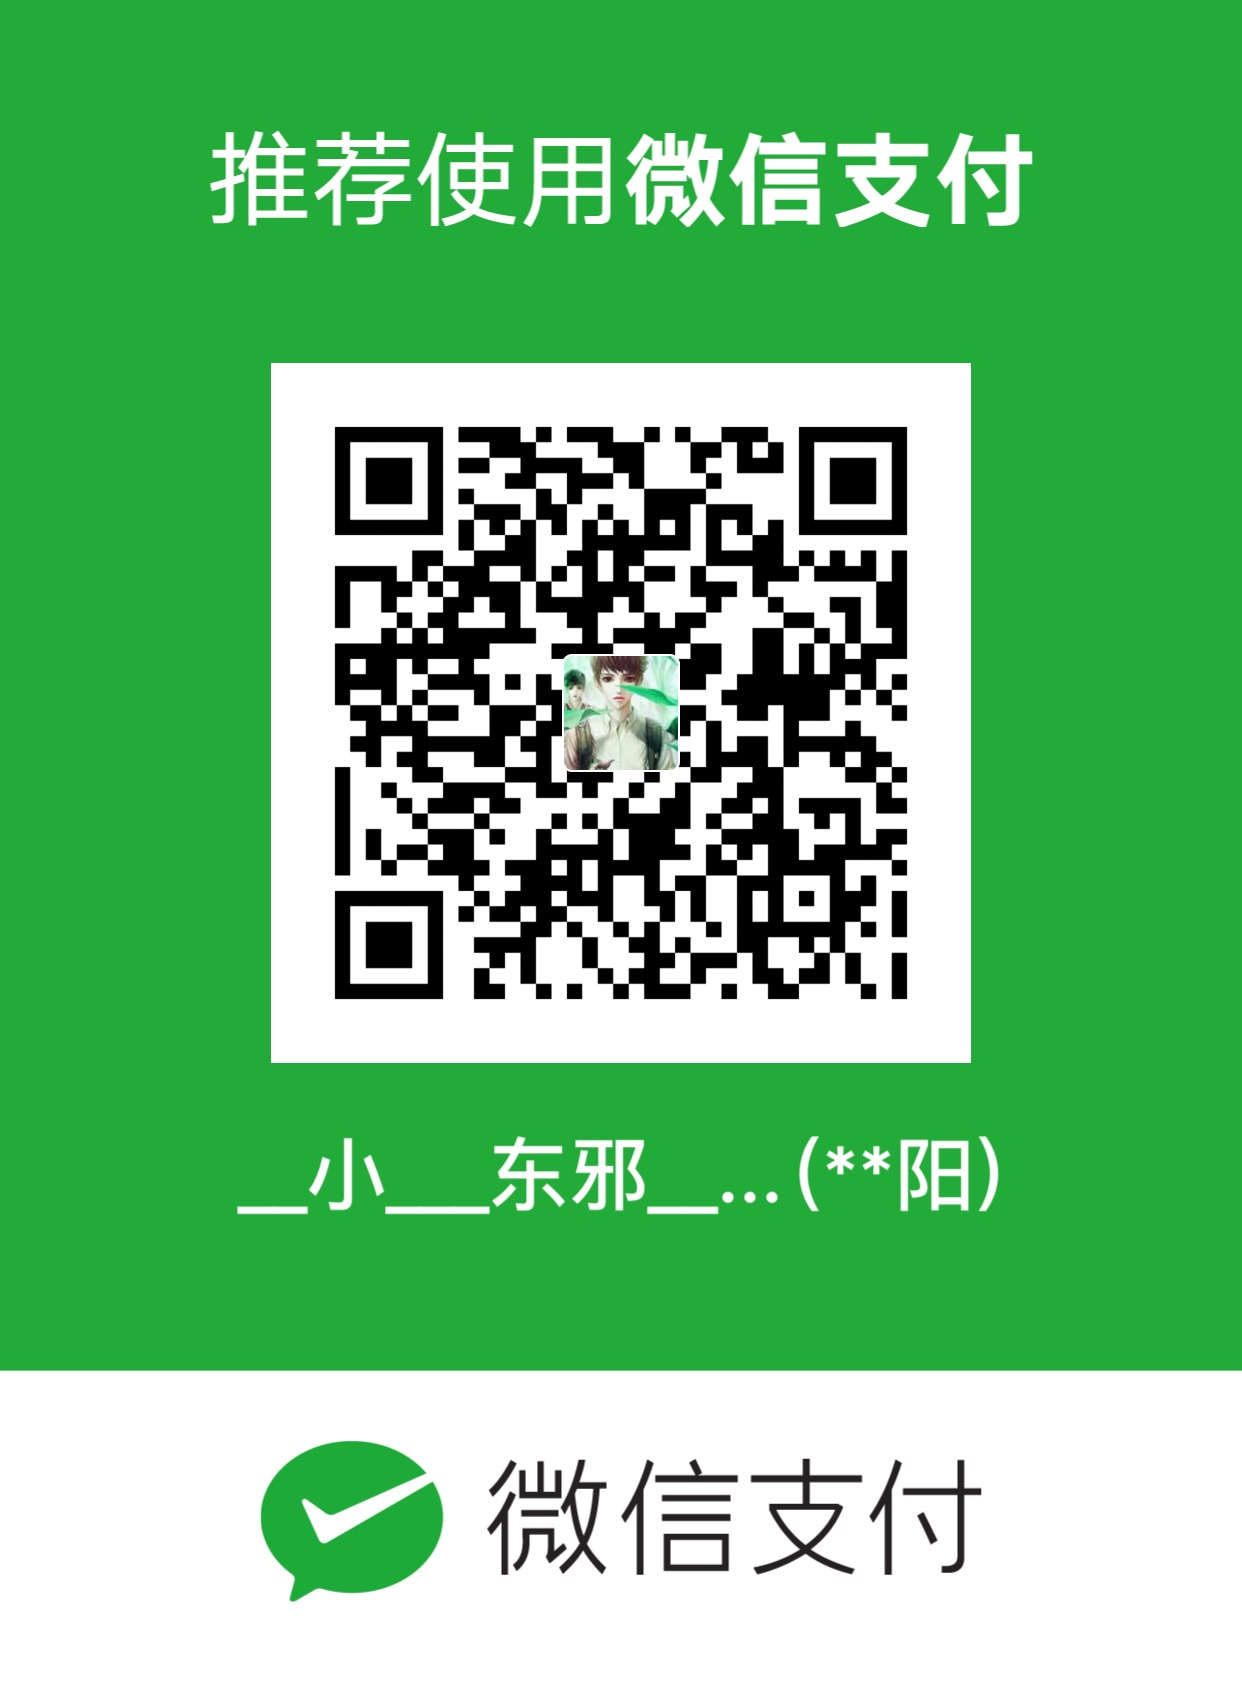 小东邪 - Demon WeChat Pay